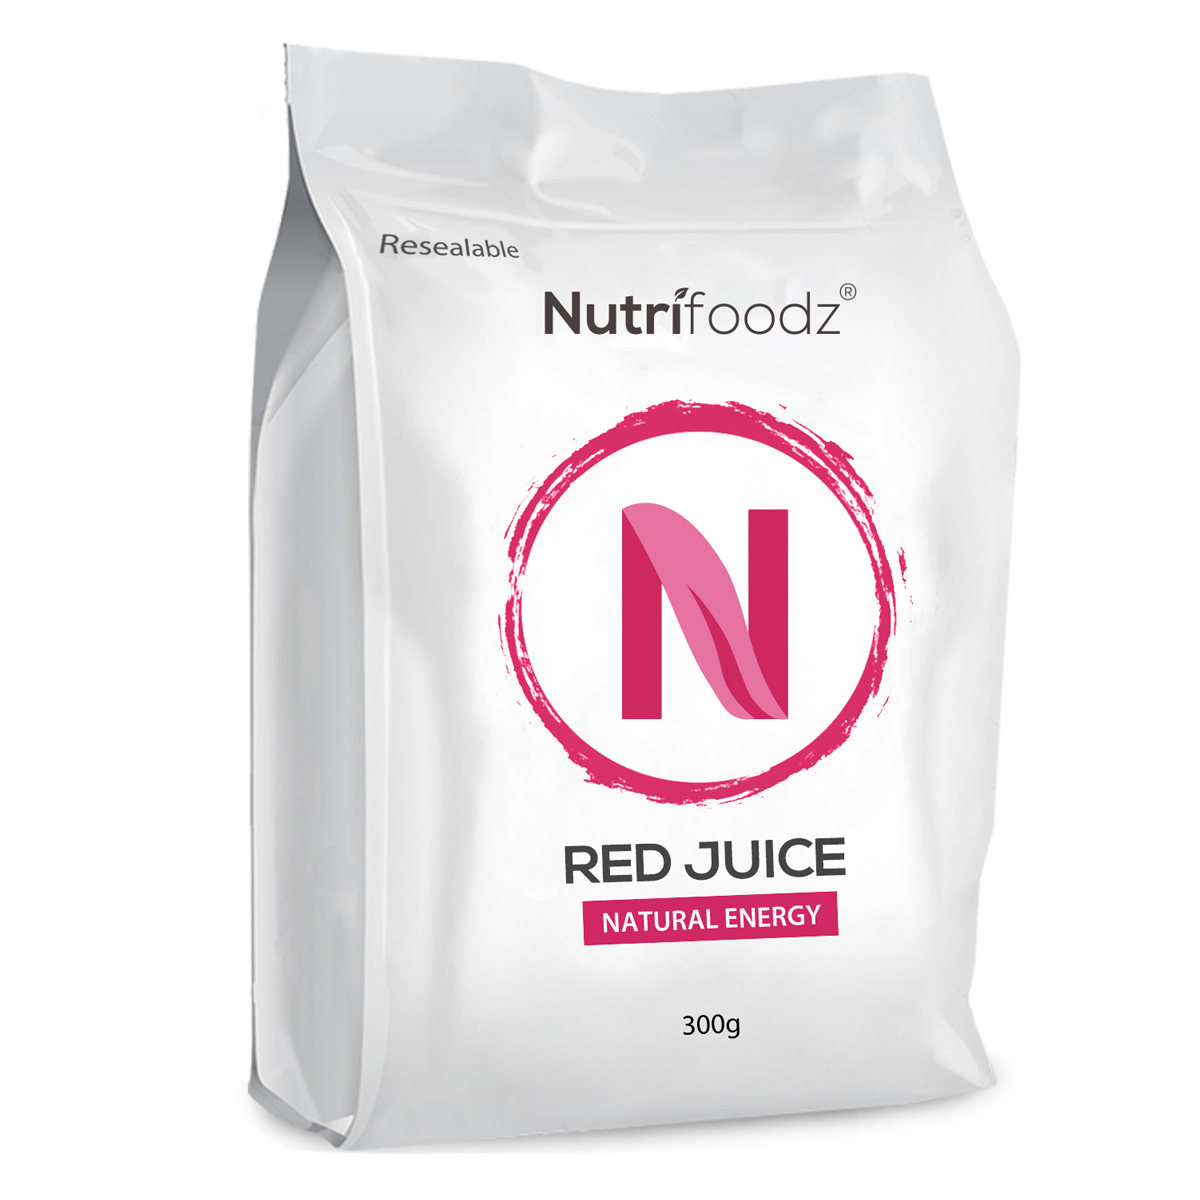 Red Juice nutrition